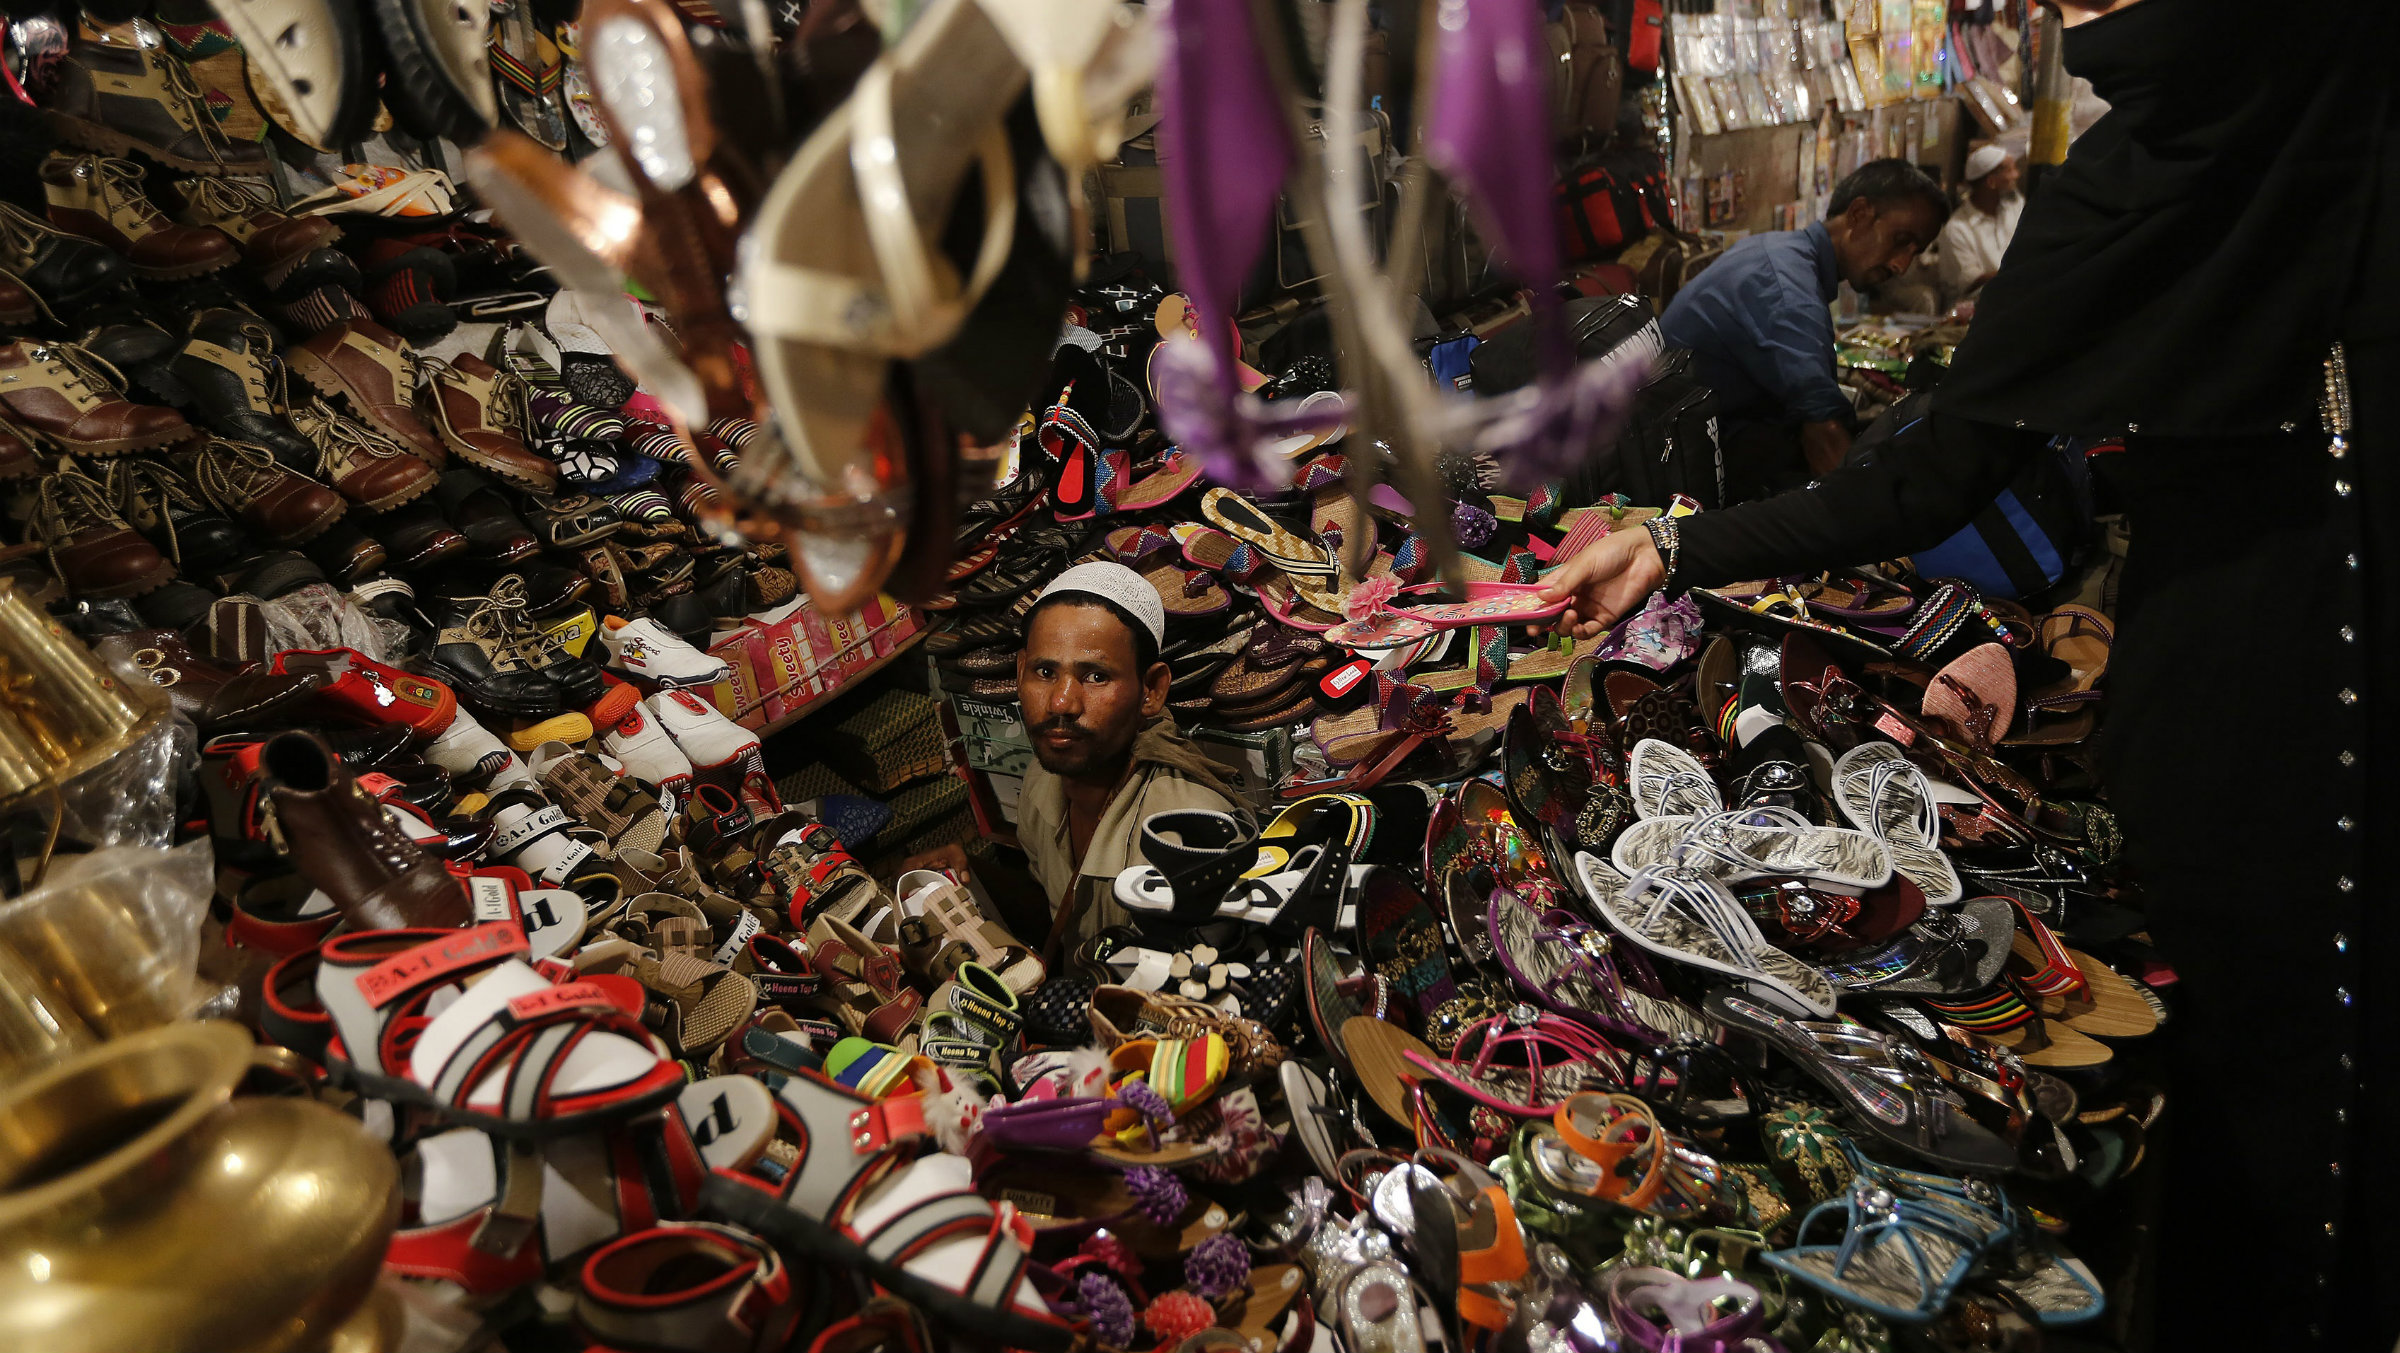 The BJP says it wants to protect small local retailers, like this one in Old Delhi.